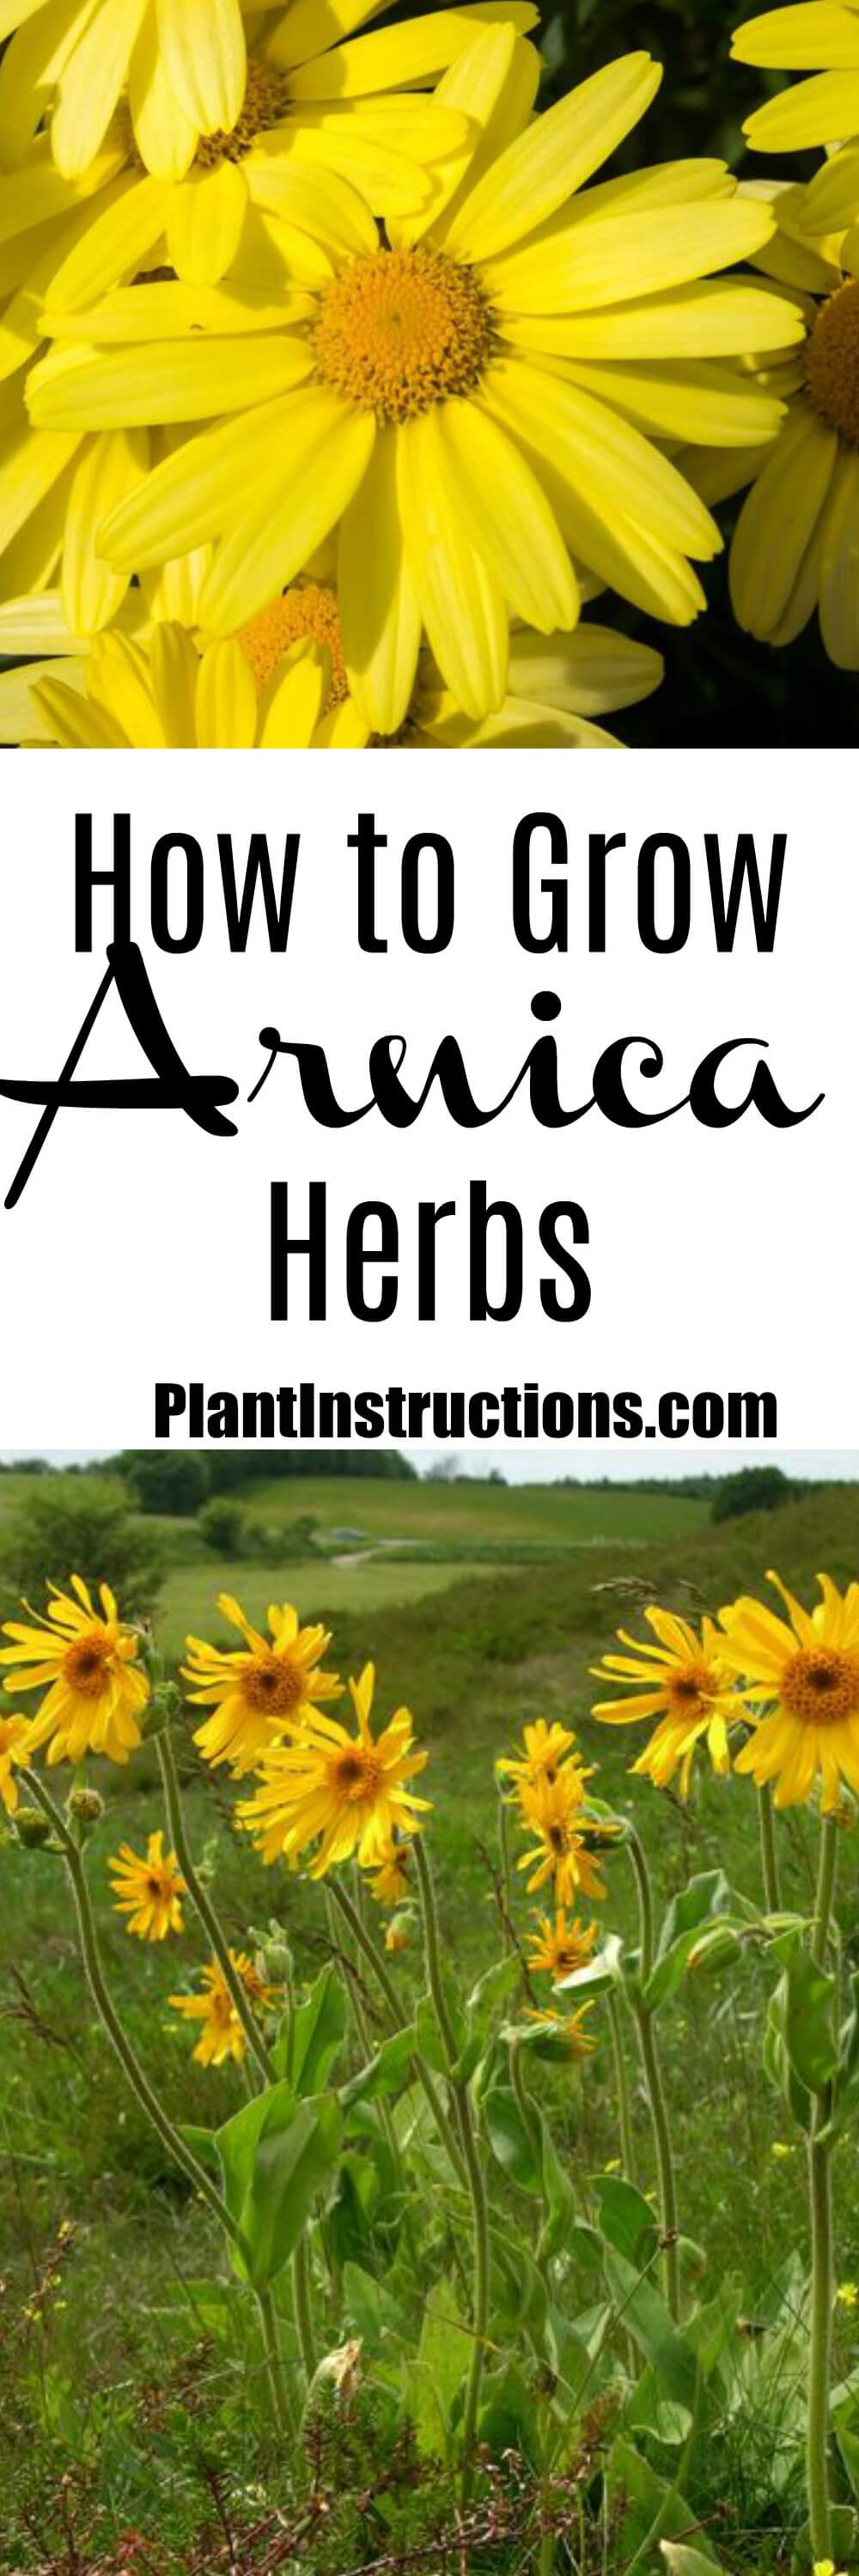 how to grow arnica herbs plant instructions. Black Bedroom Furniture Sets. Home Design Ideas